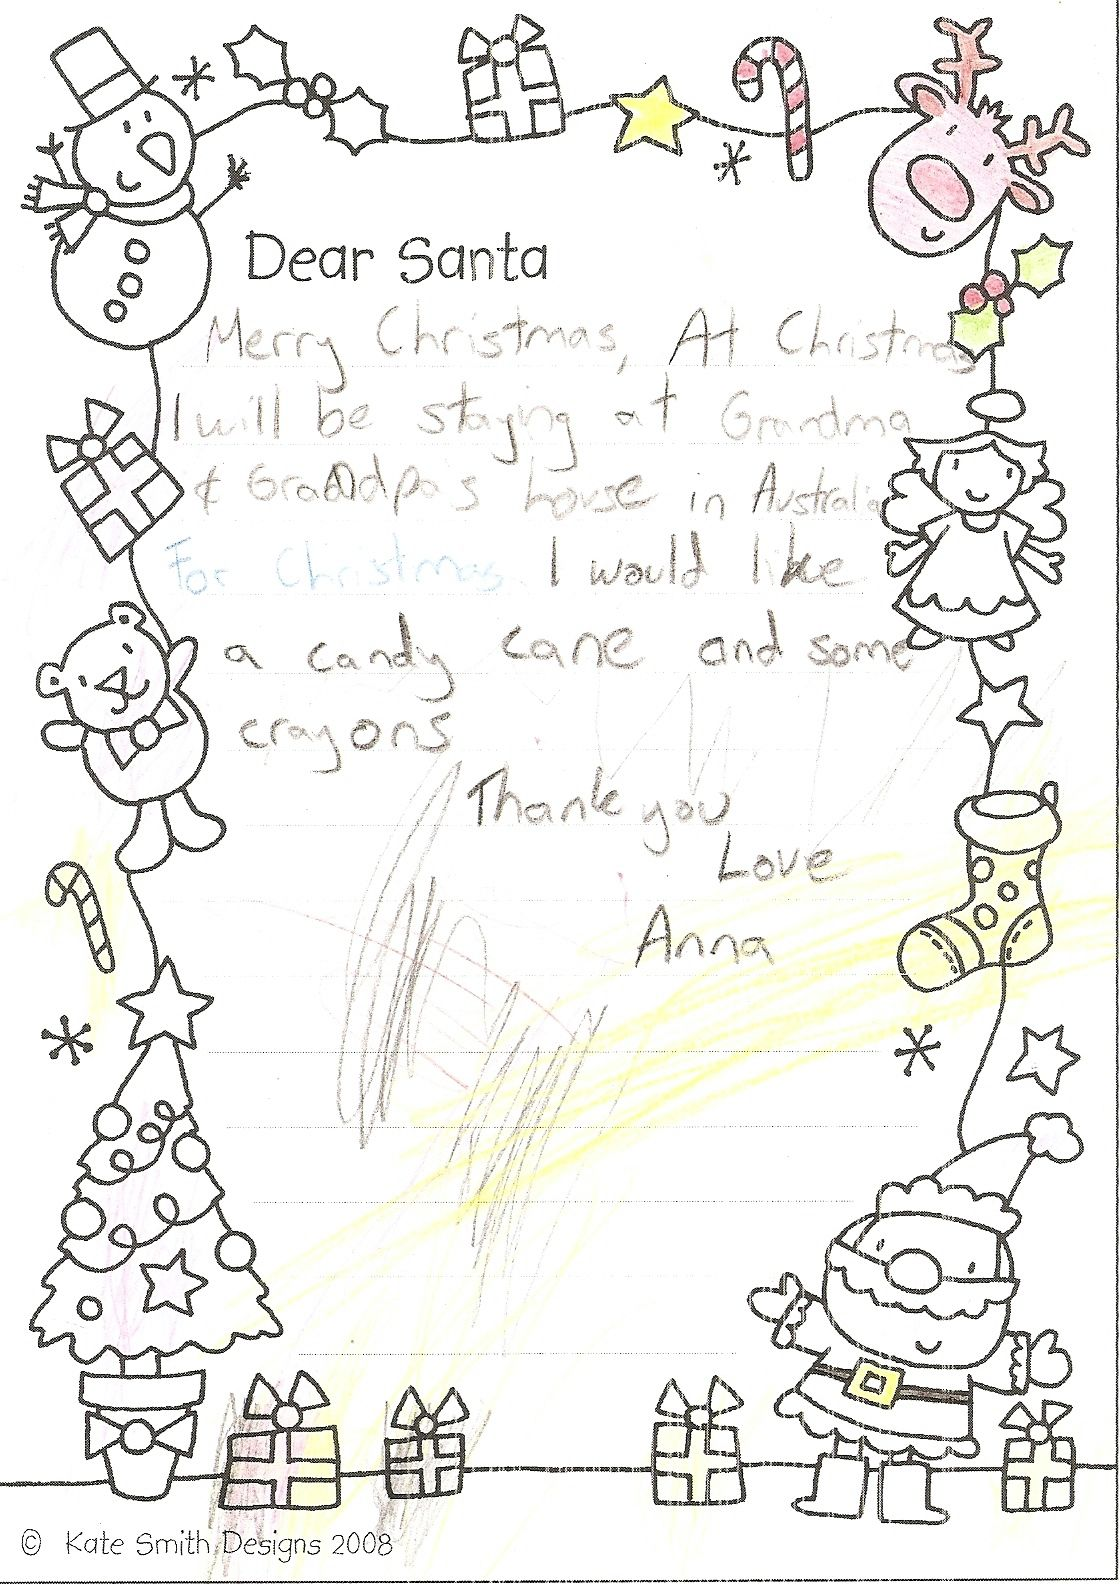 Dear Santa Coloring Page With Letter To For Young Kids Aubrianah And